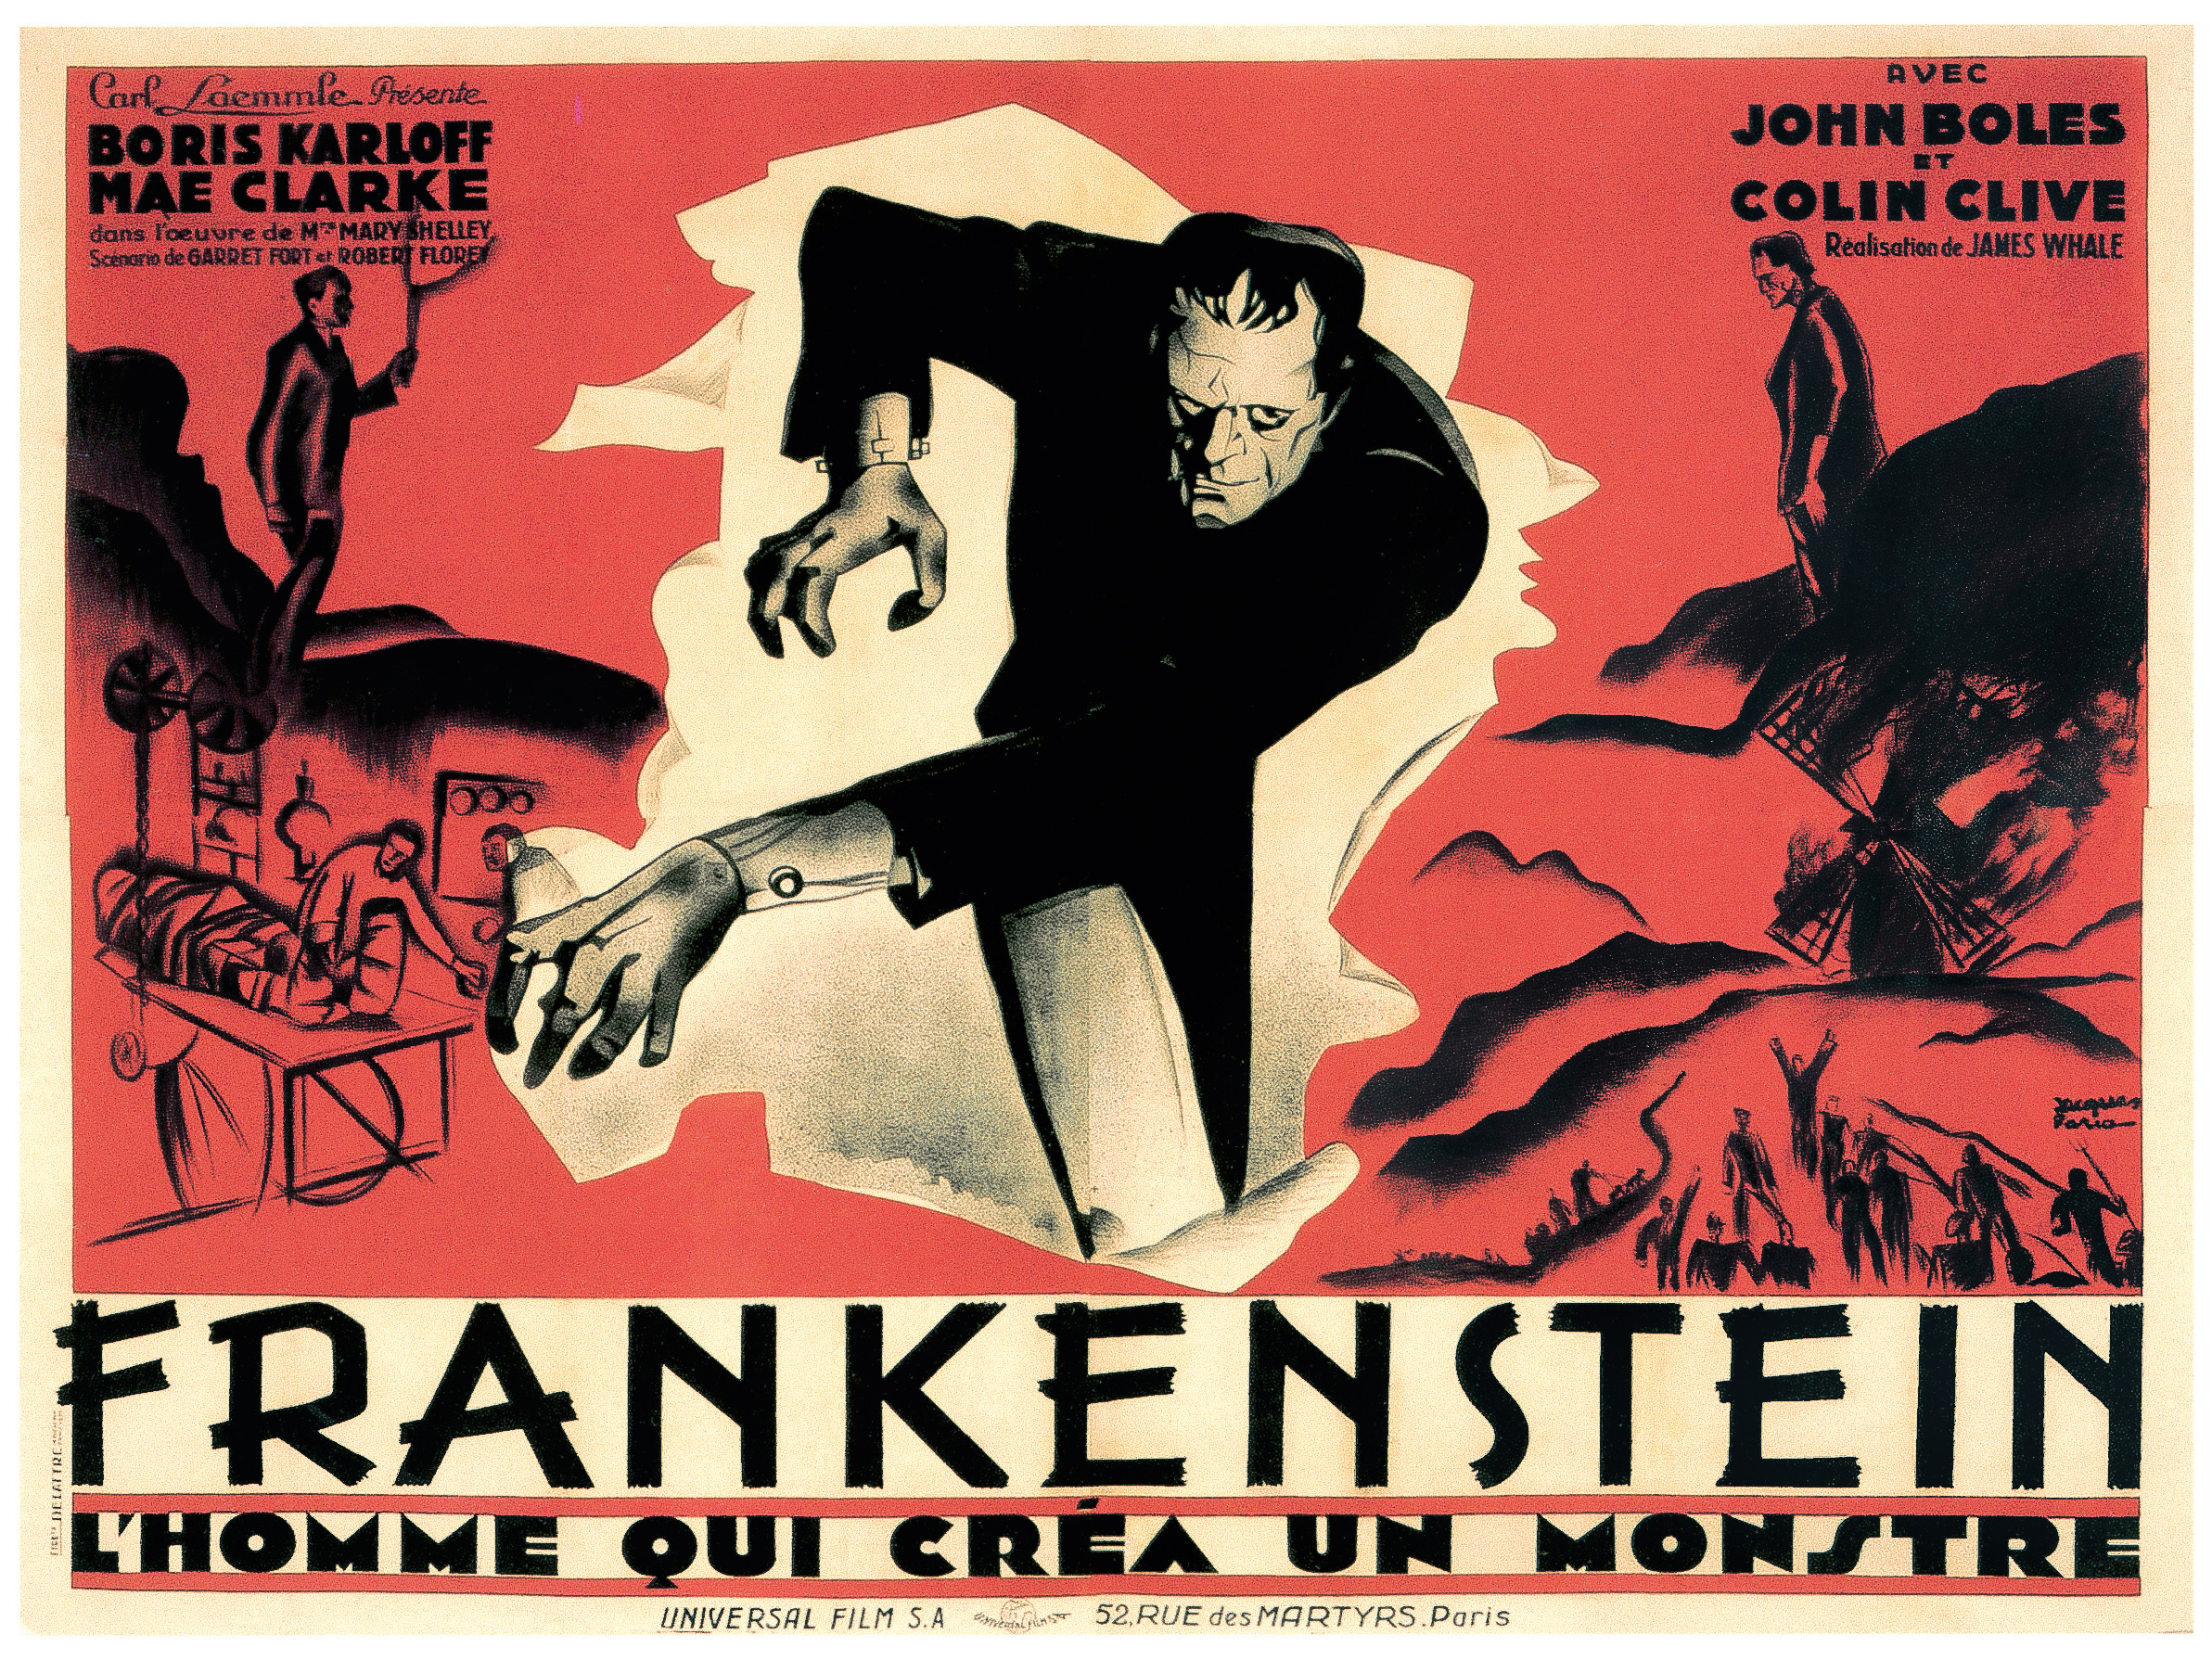 Original French billboard poster for Frankstein by artist Jacques Faria (1931).